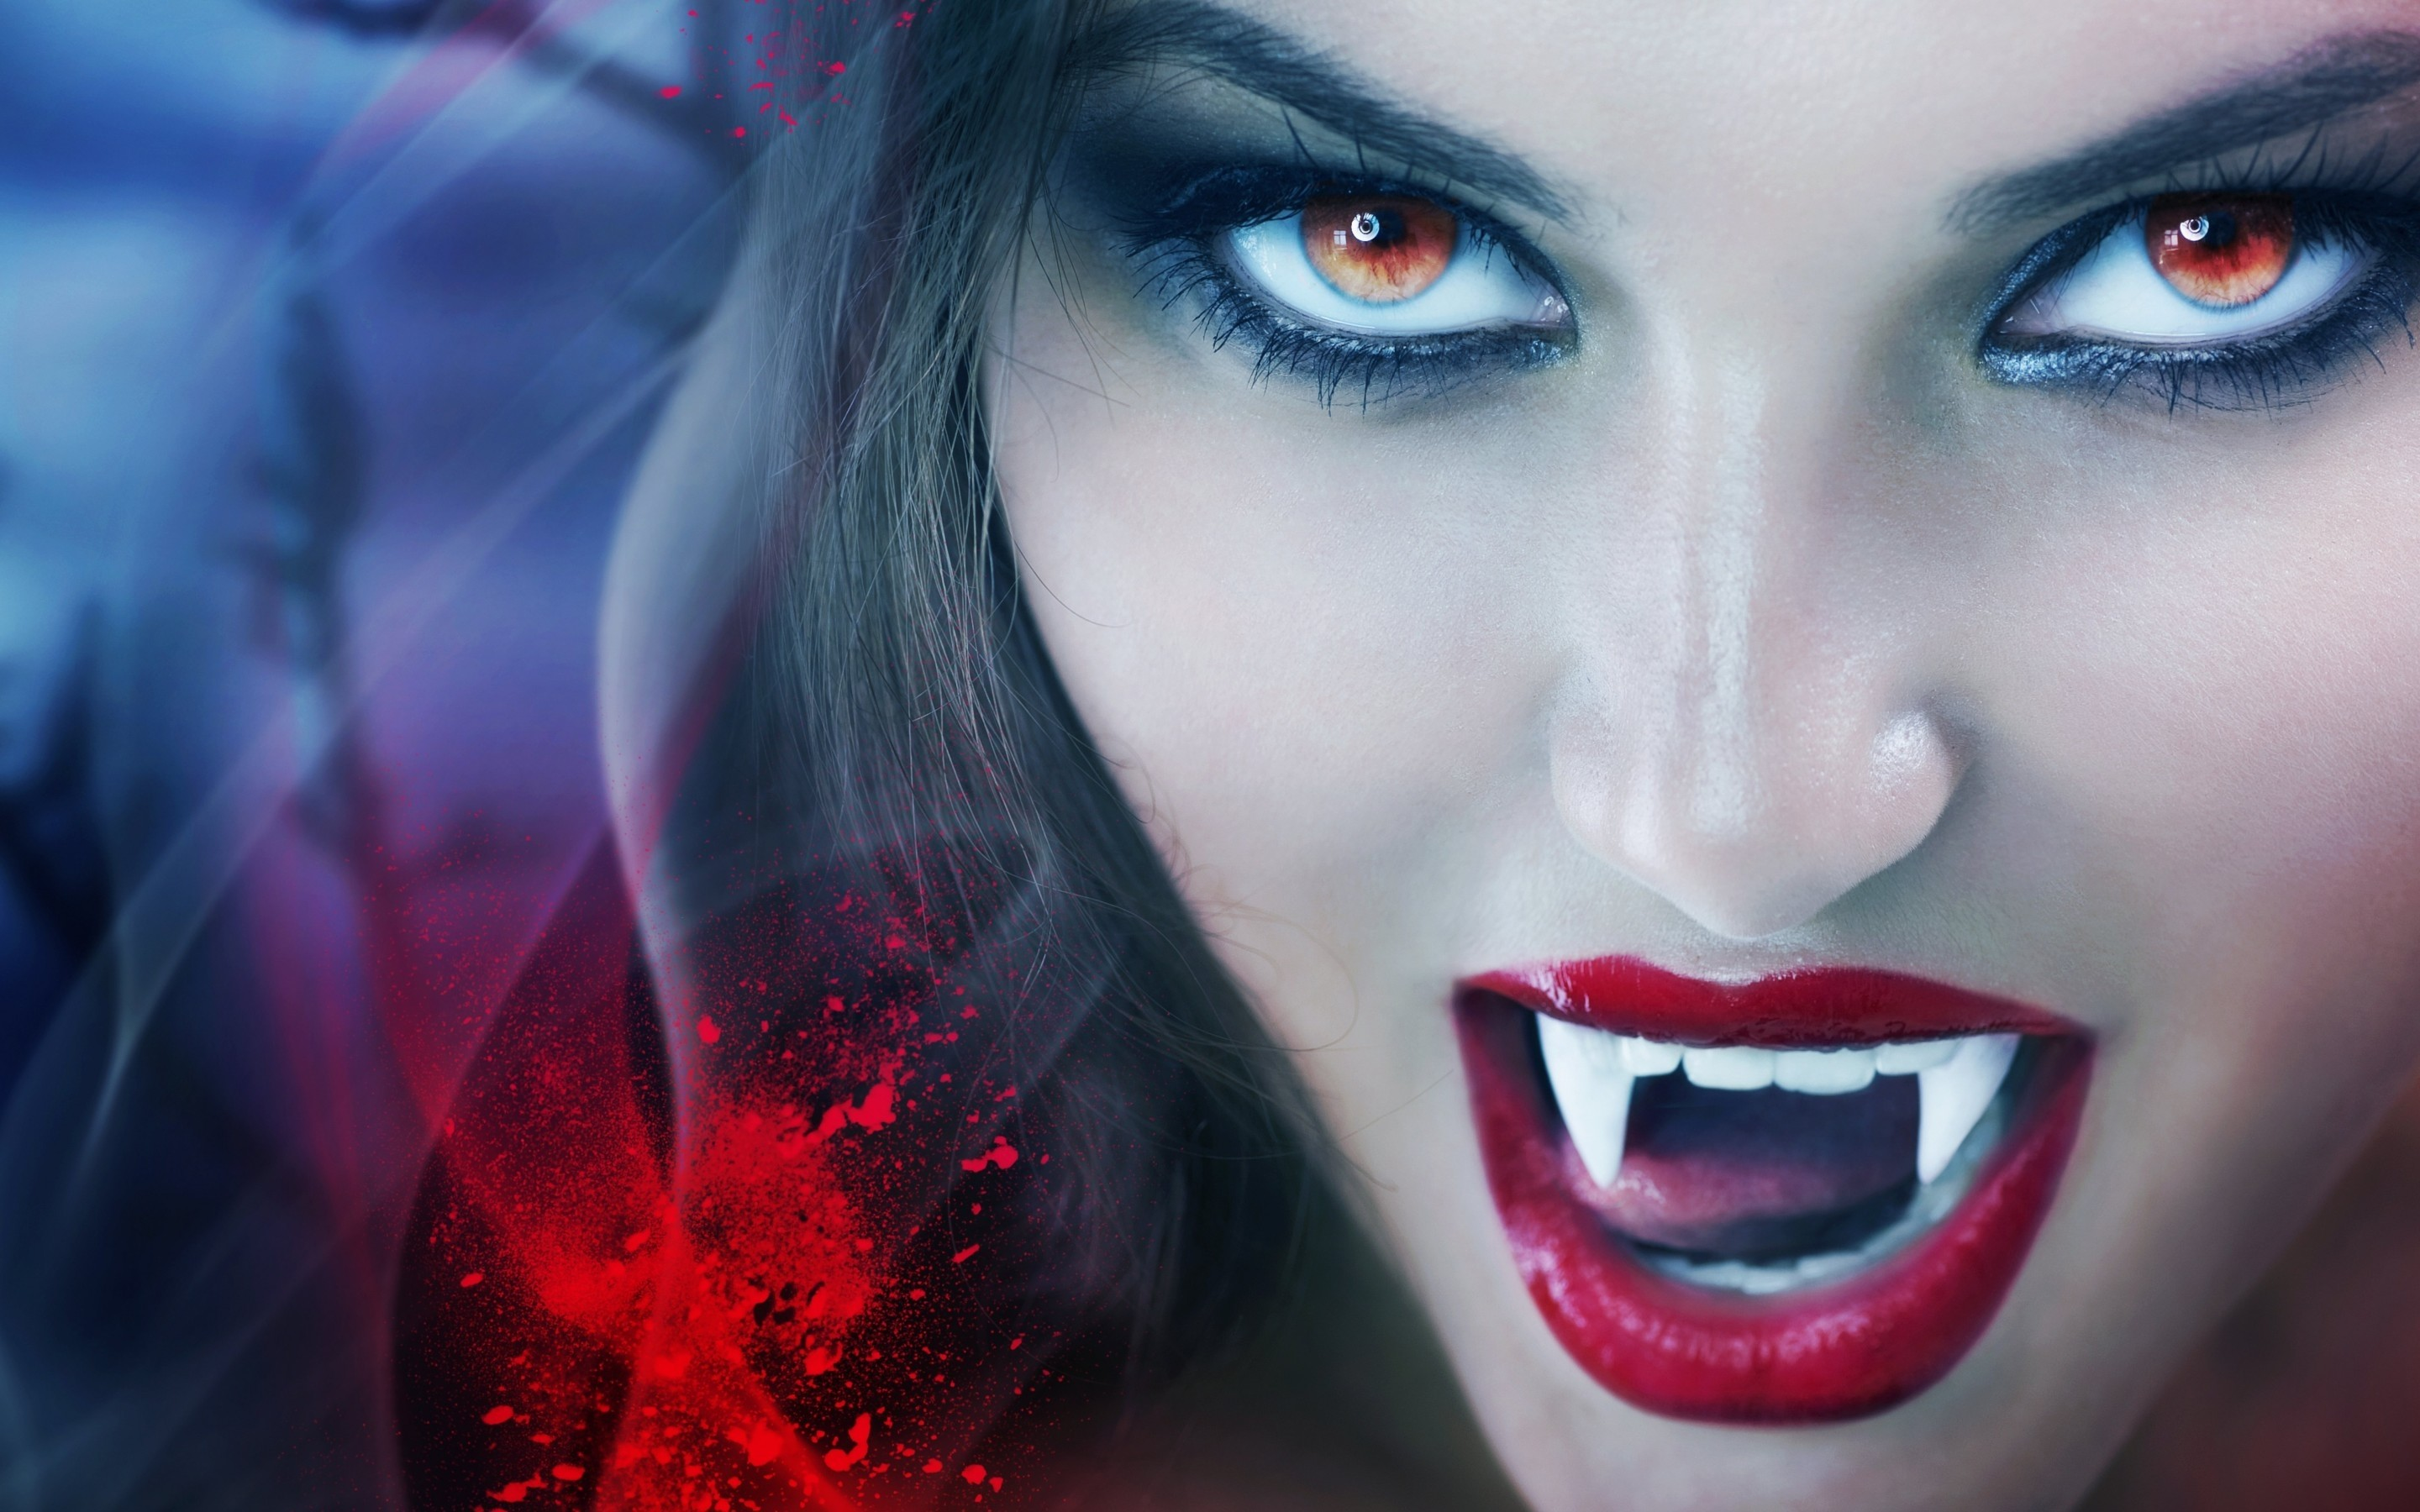 2880x1800 Vampires images Vampire HD wallpaper and background photos